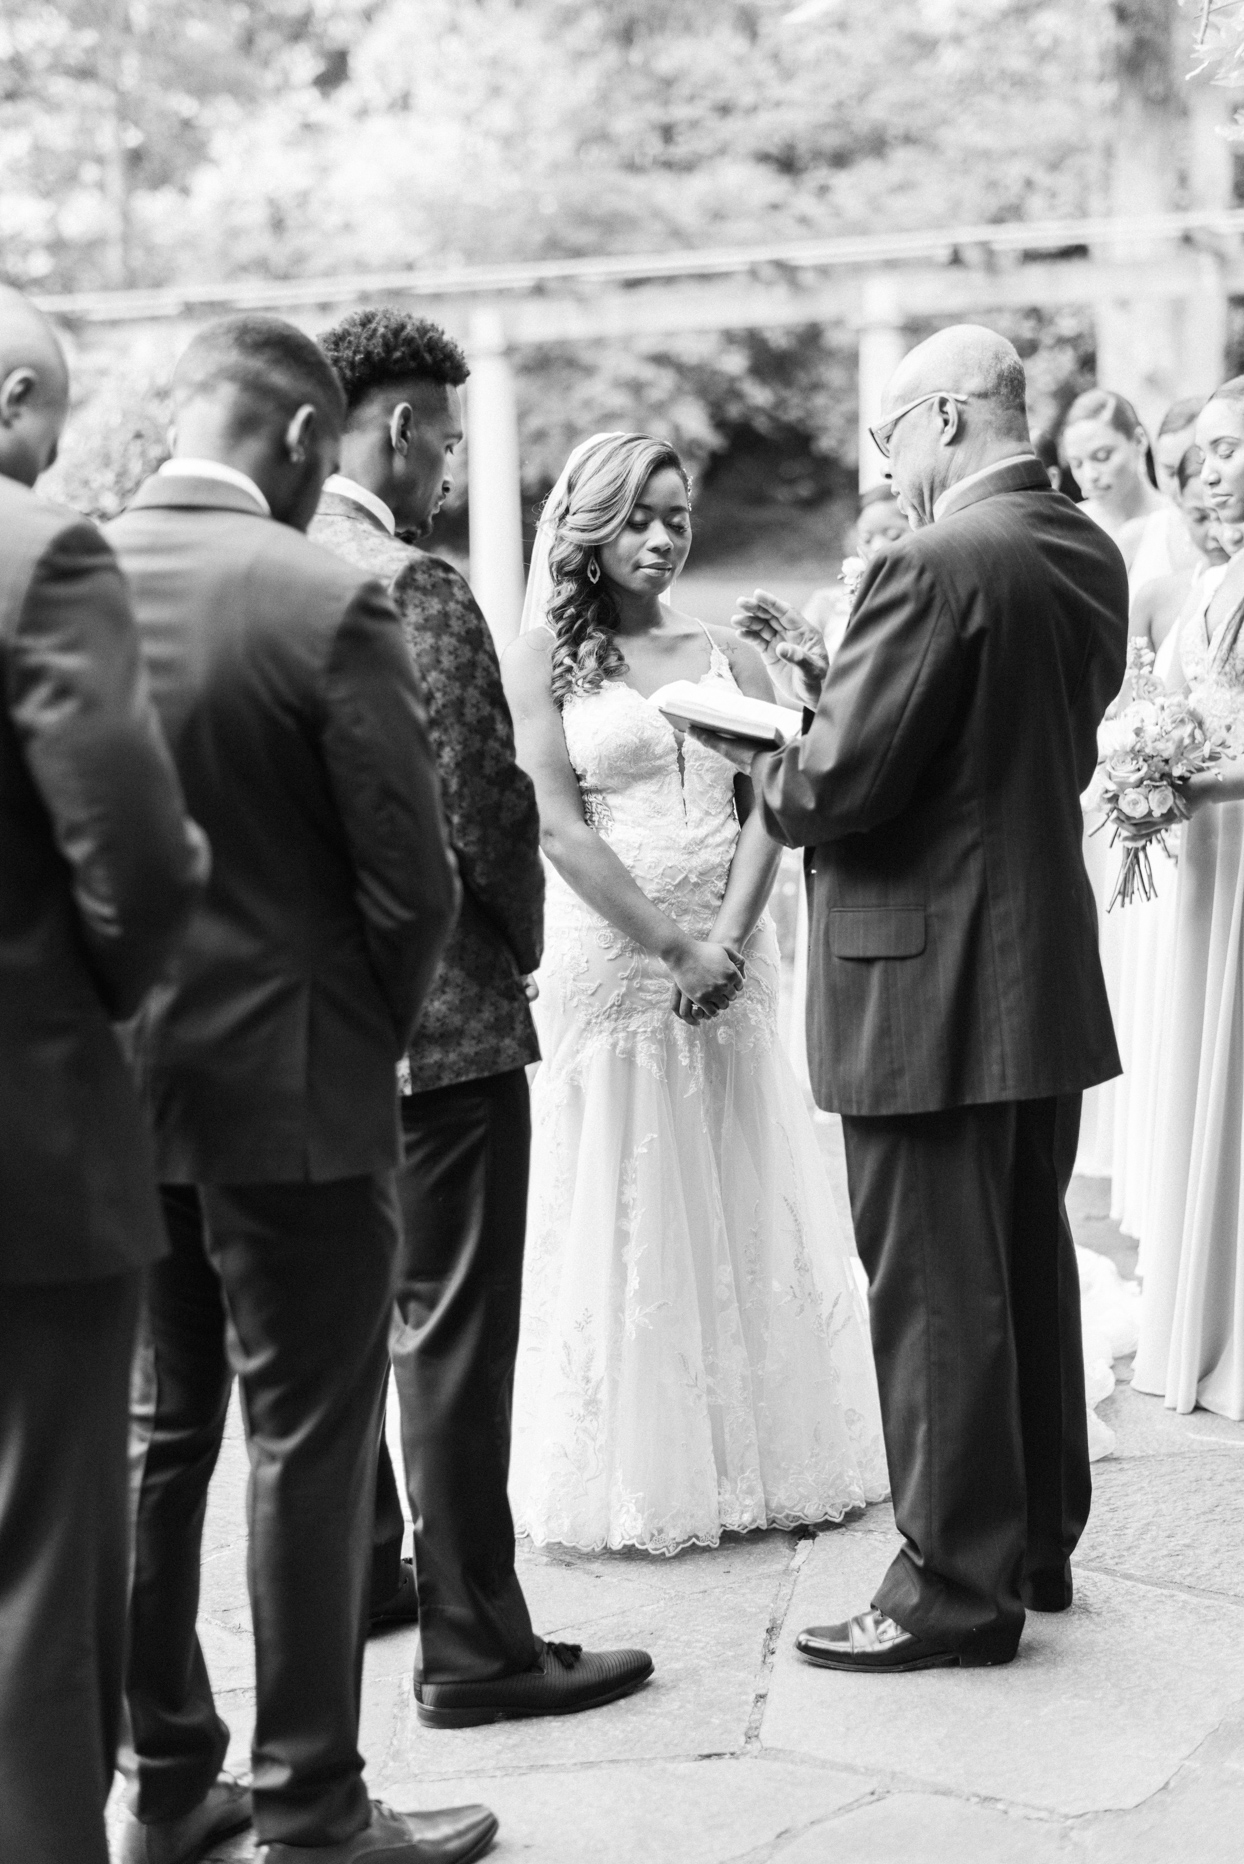 bride and groom surrounded by wedding party during ceremony